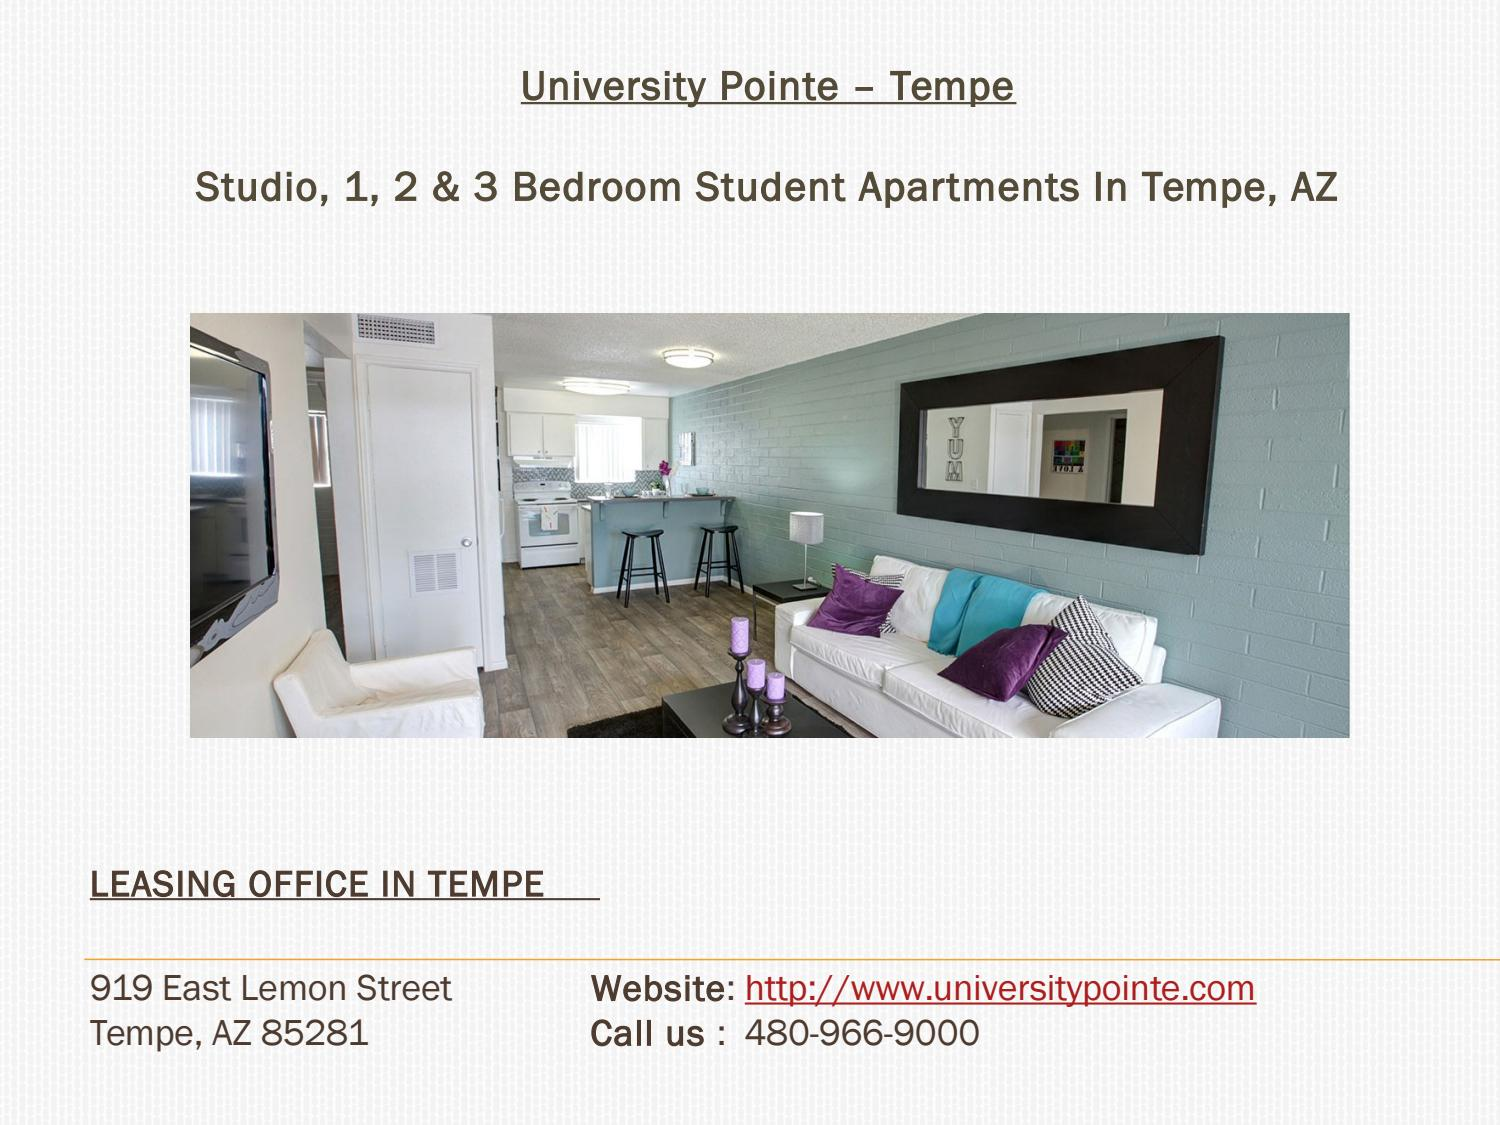 University pointe apartments in tempe az near asu by university pointe issuu 1 bedroom apartments tempe